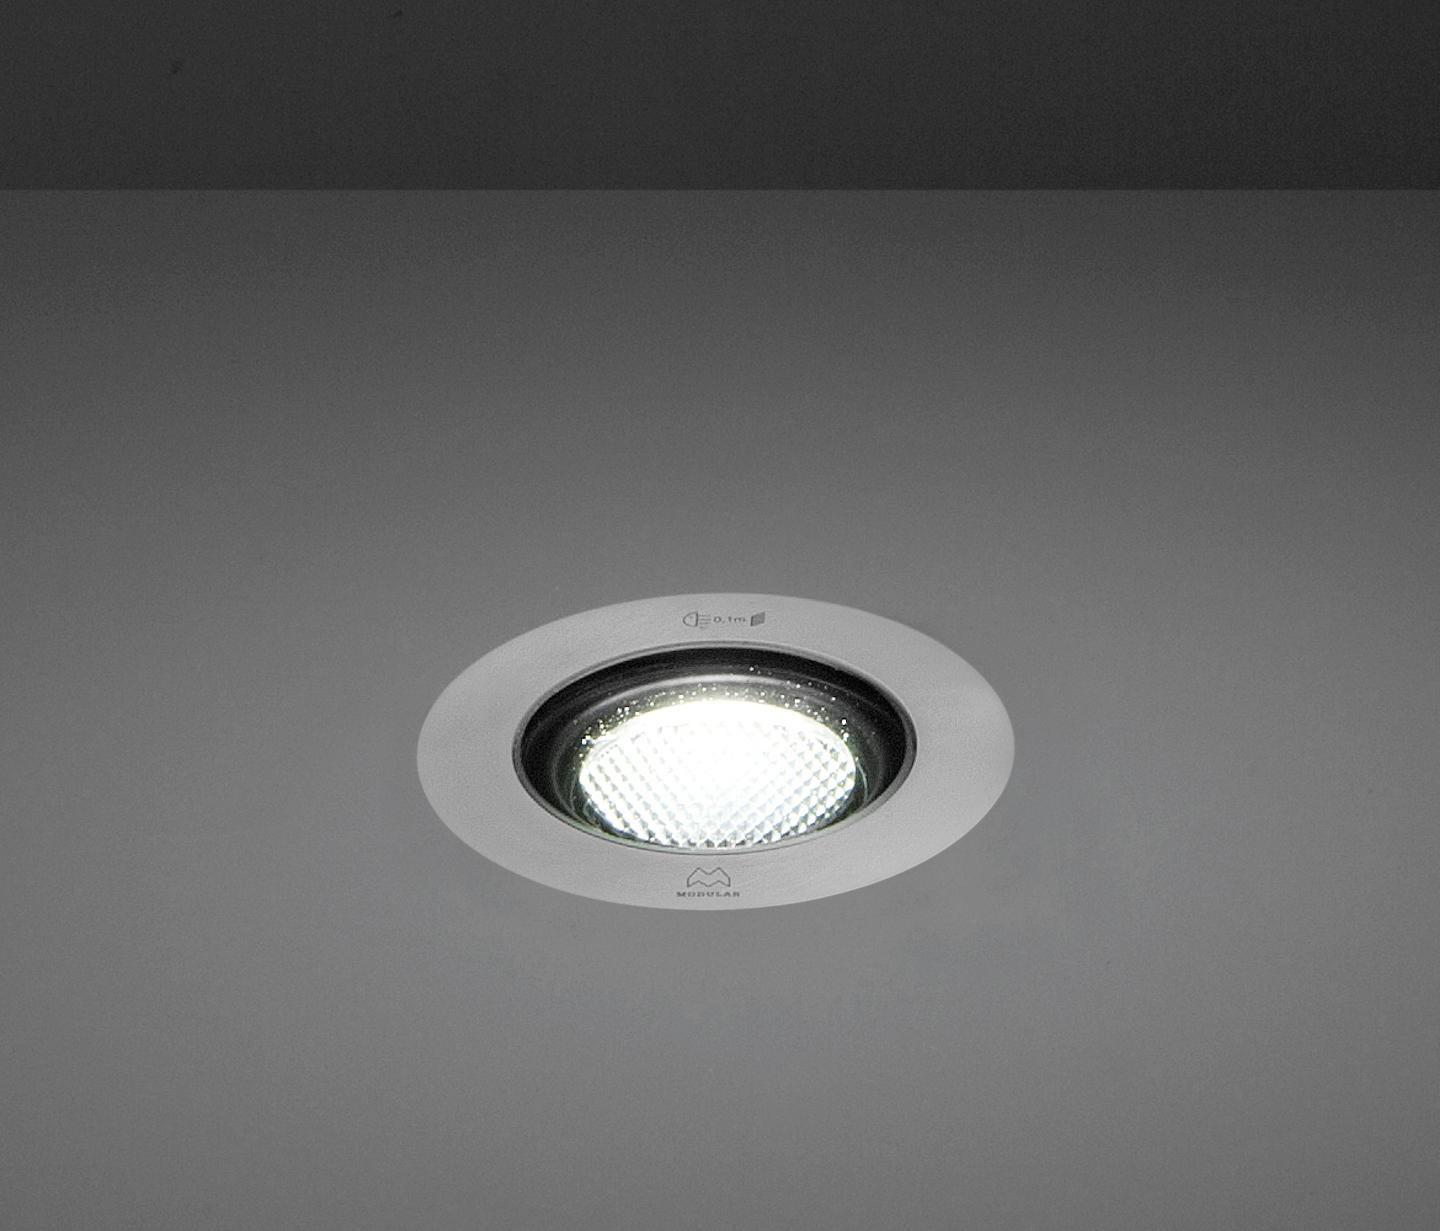 Hipy 110 Anti Glare Ip67 Led Ge Outdoor Recessed Floor